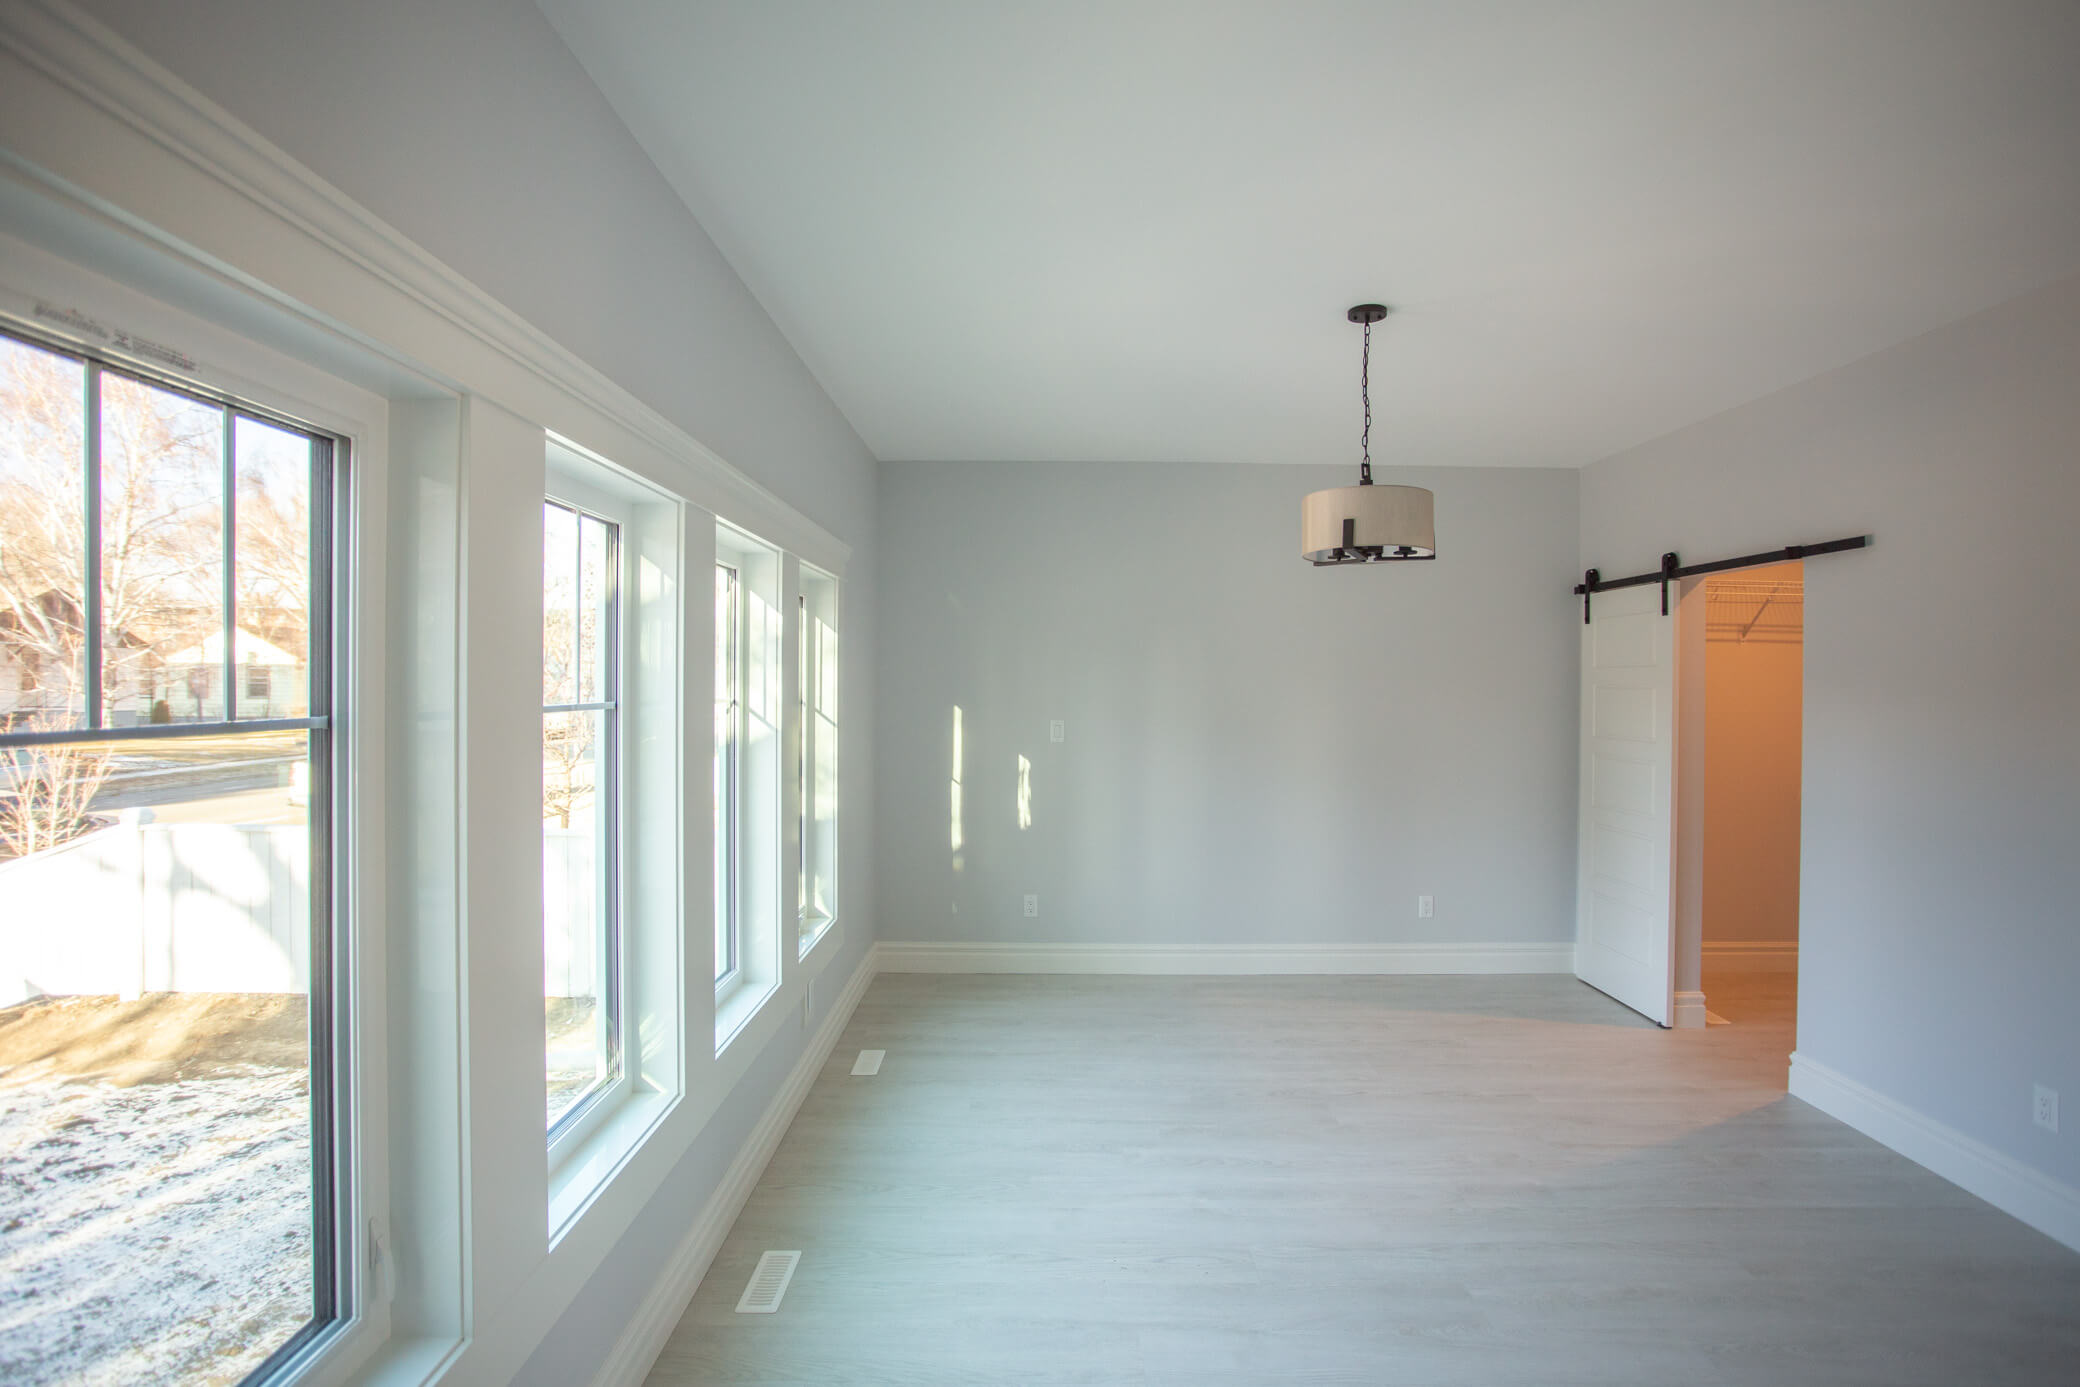 Renovated master Bedroom in Lethbridge with Lots of Natural Light